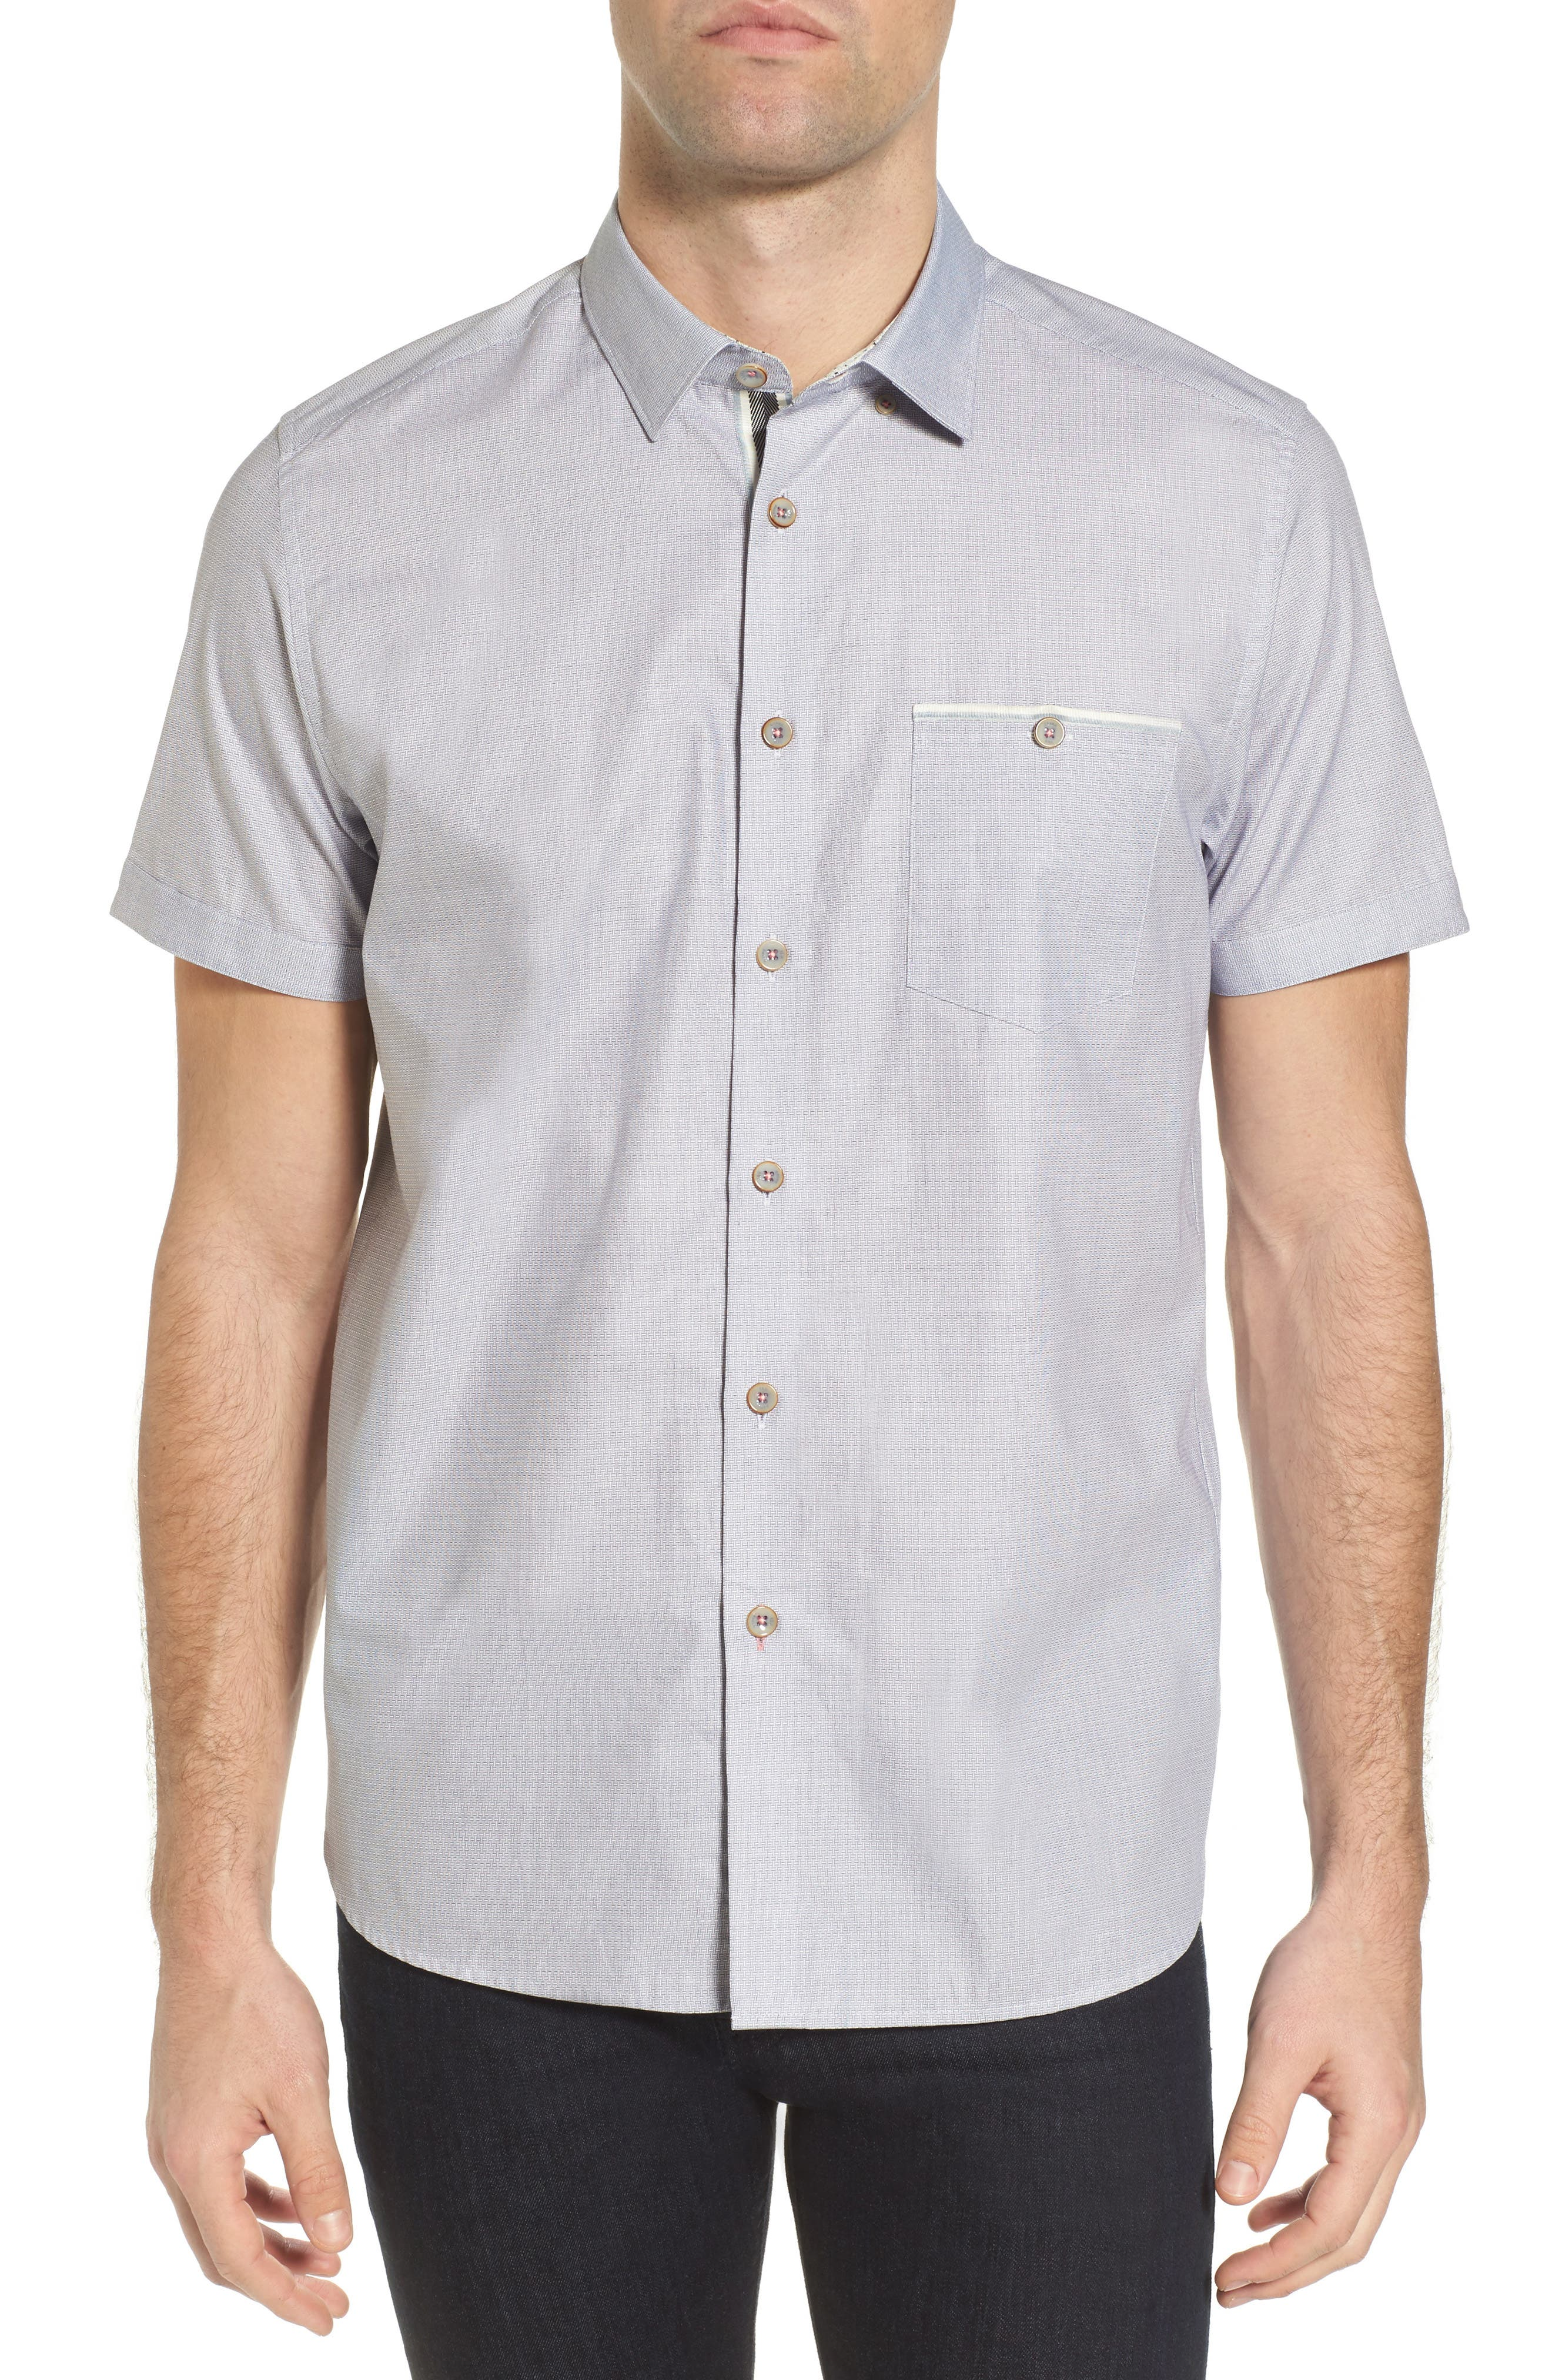 Wonky Trim Fit Oxford Sport Shirt,                         Main,                         color, White